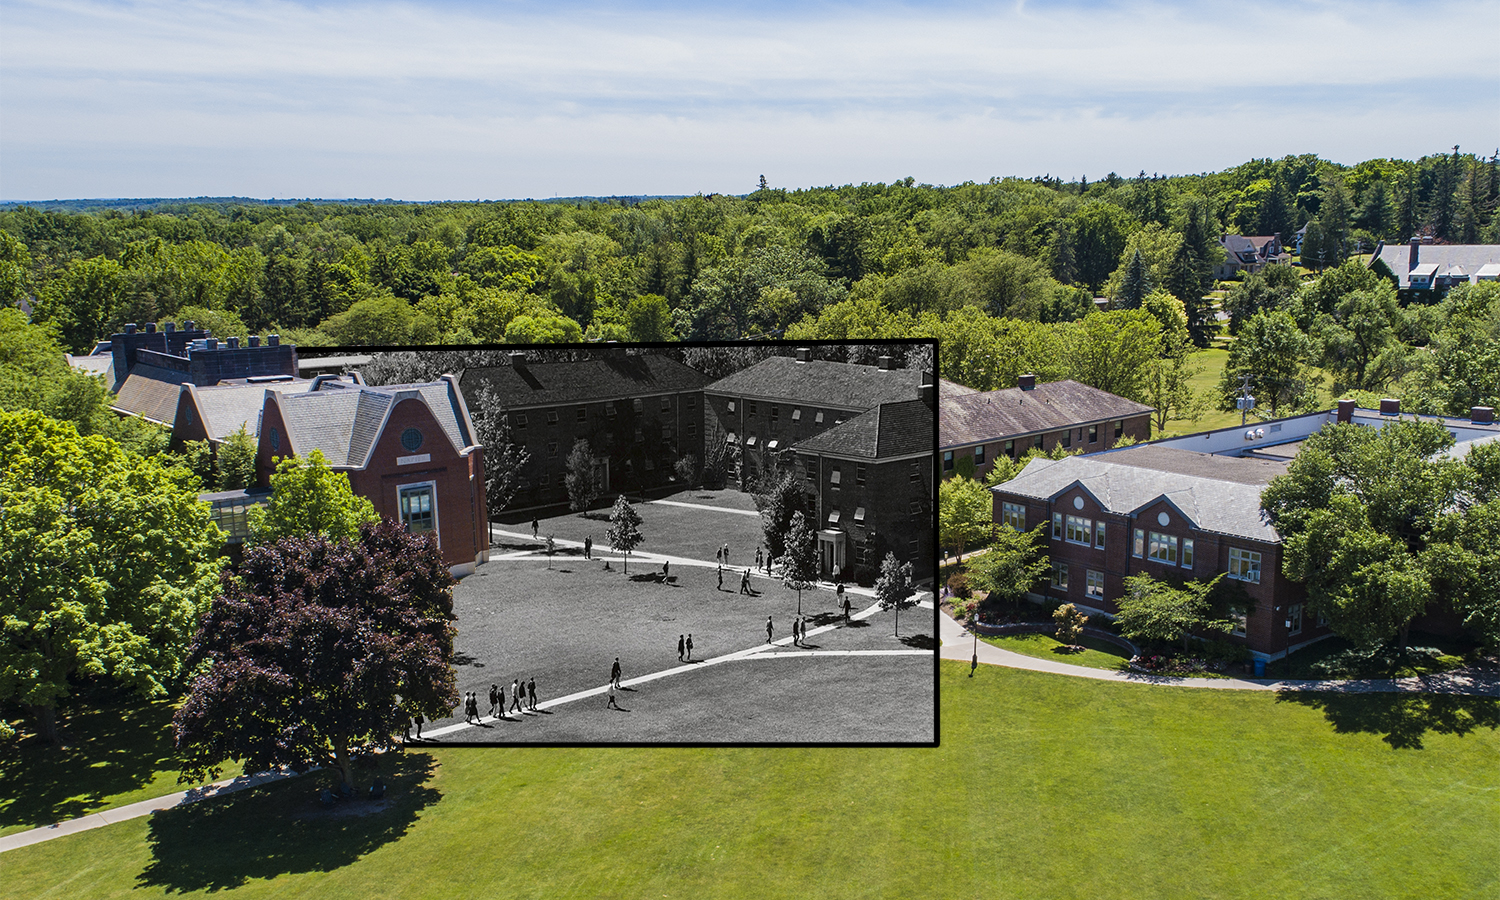 THe Mini-Quad, made up of Barlet, Durfee, and Hale, was built along with Gulick Hall in 1951. Though at the time of this photograph, 1967, Barlett, Durfee and Hale  were all-male residence halls, Hale Hall now has one floor of female housing.